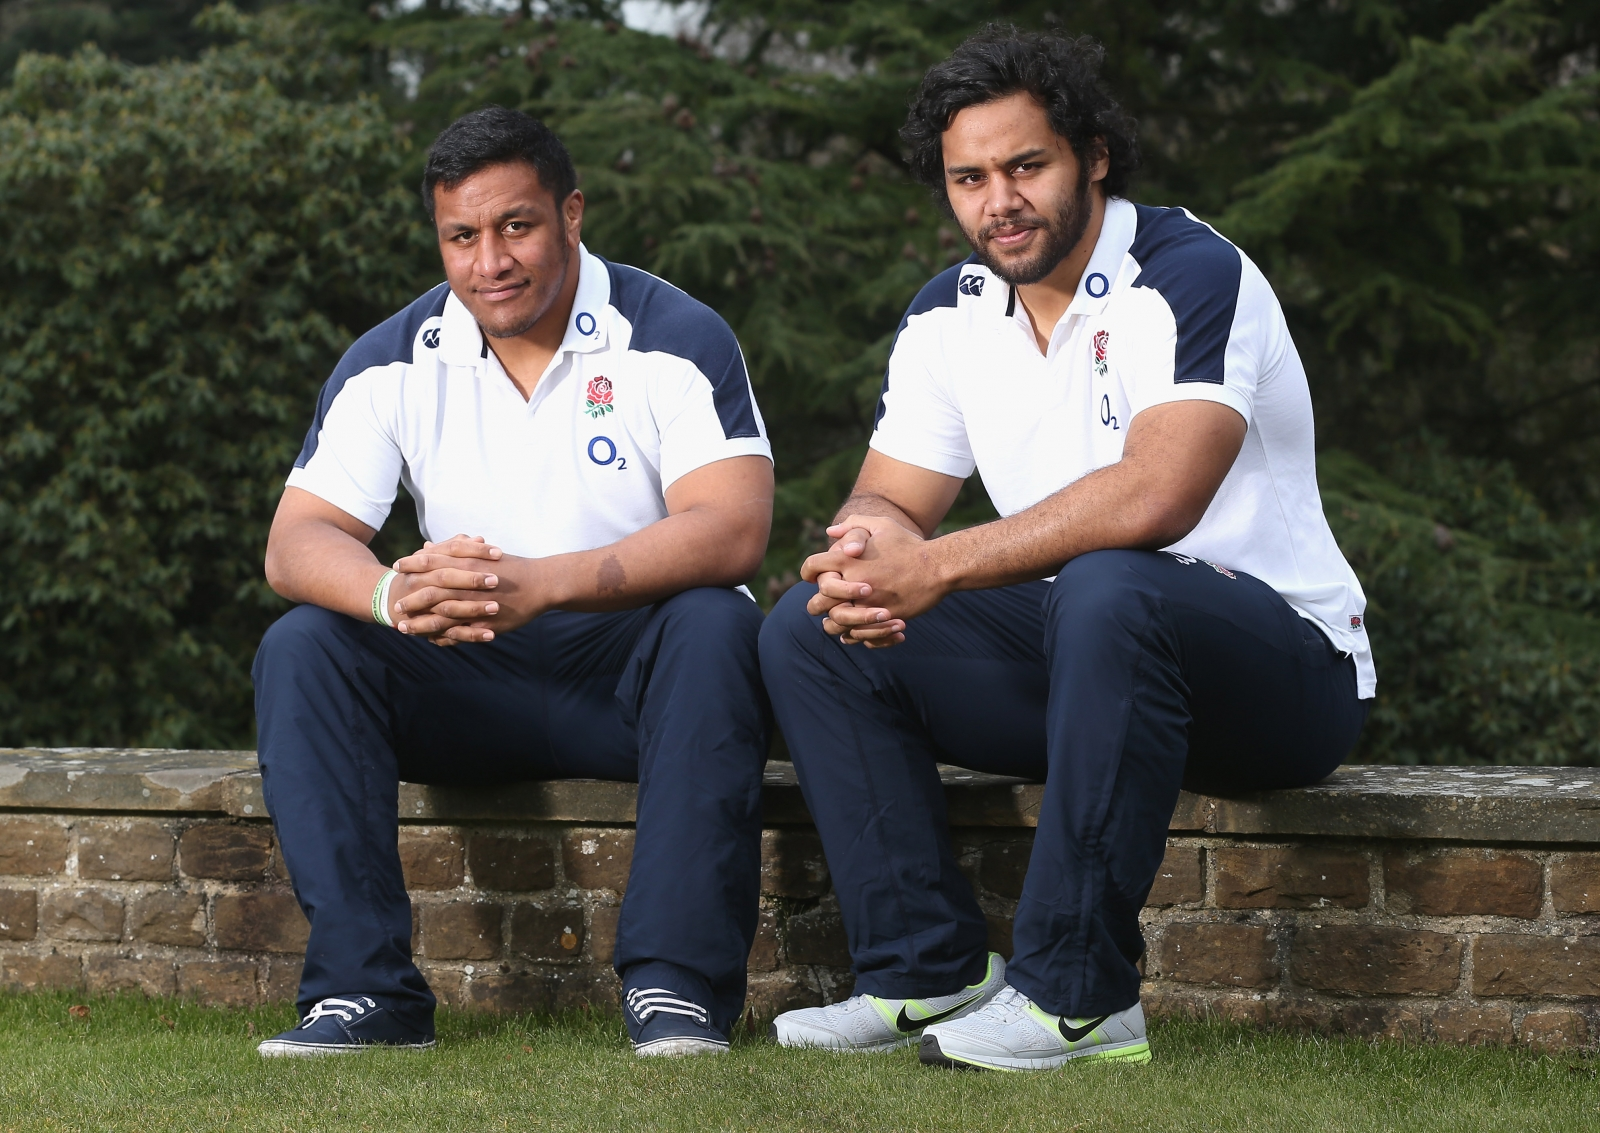 Mako Vunipola and Billy Vunipola